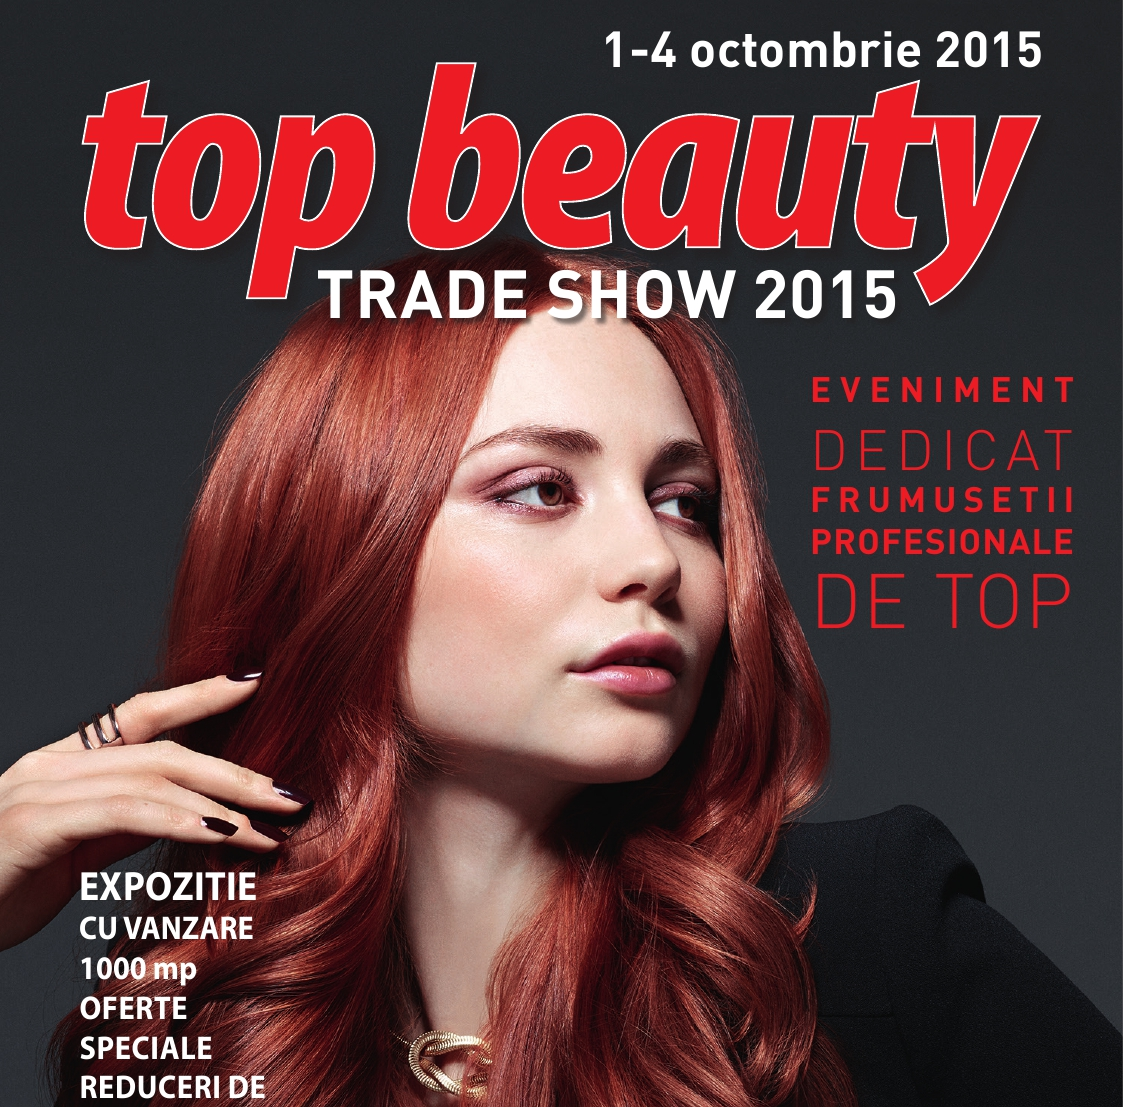 TOP BEAUTY TRADE SHOW 2015 -